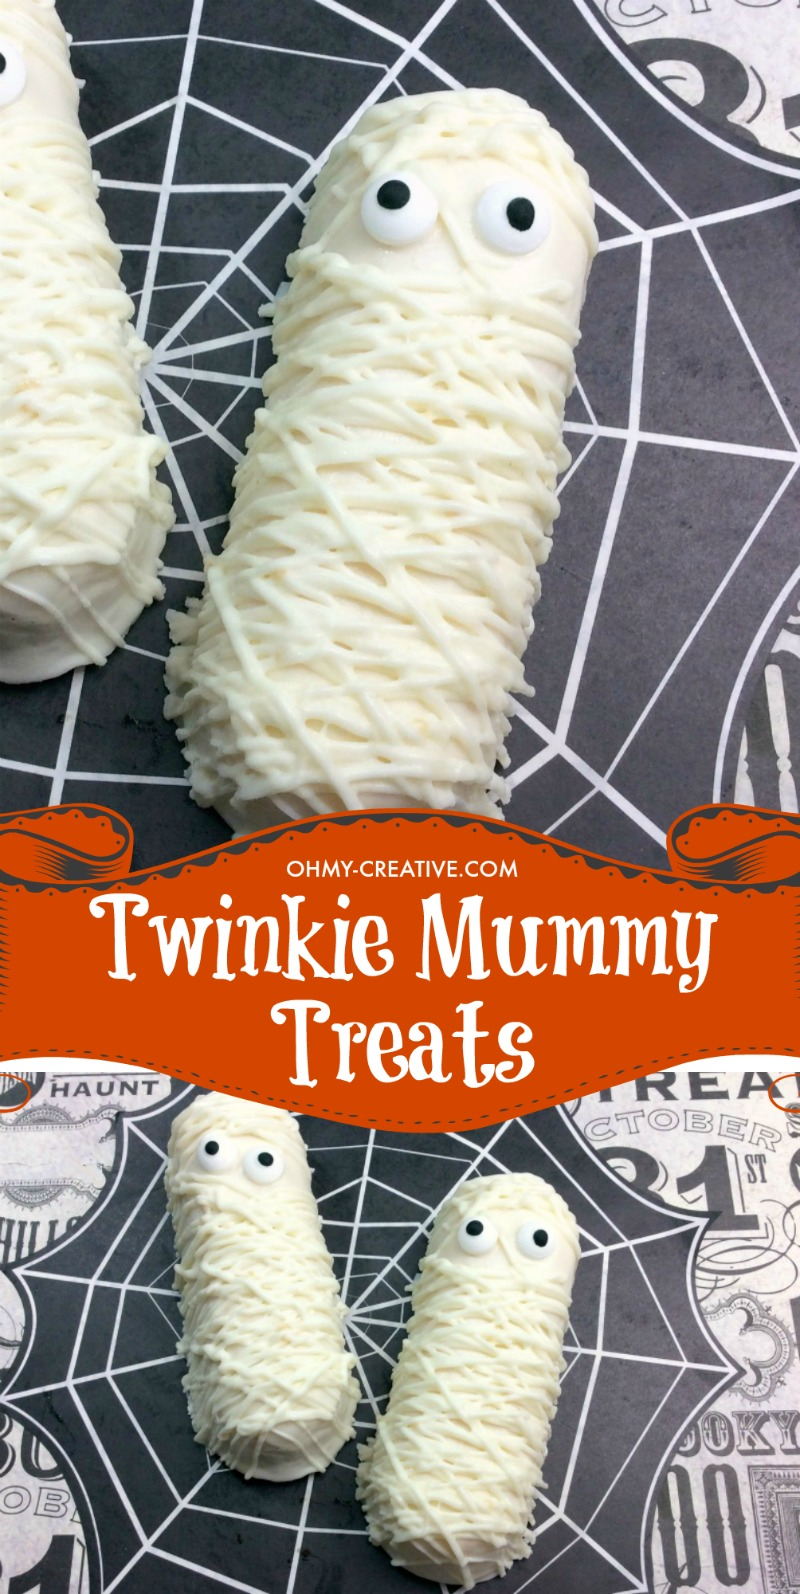 These Twinkie Mummy cakes are perfect Halloween Treats for a Party! OHMY-CREATIVE.COM | Halloween food | Halloween Dessert | Mummy Cakes | Twinkie Mummy Treats | Halloween Treats | Mummy Twinkie Pops | Twinkie Mummies | Mummy Halloween Dessert